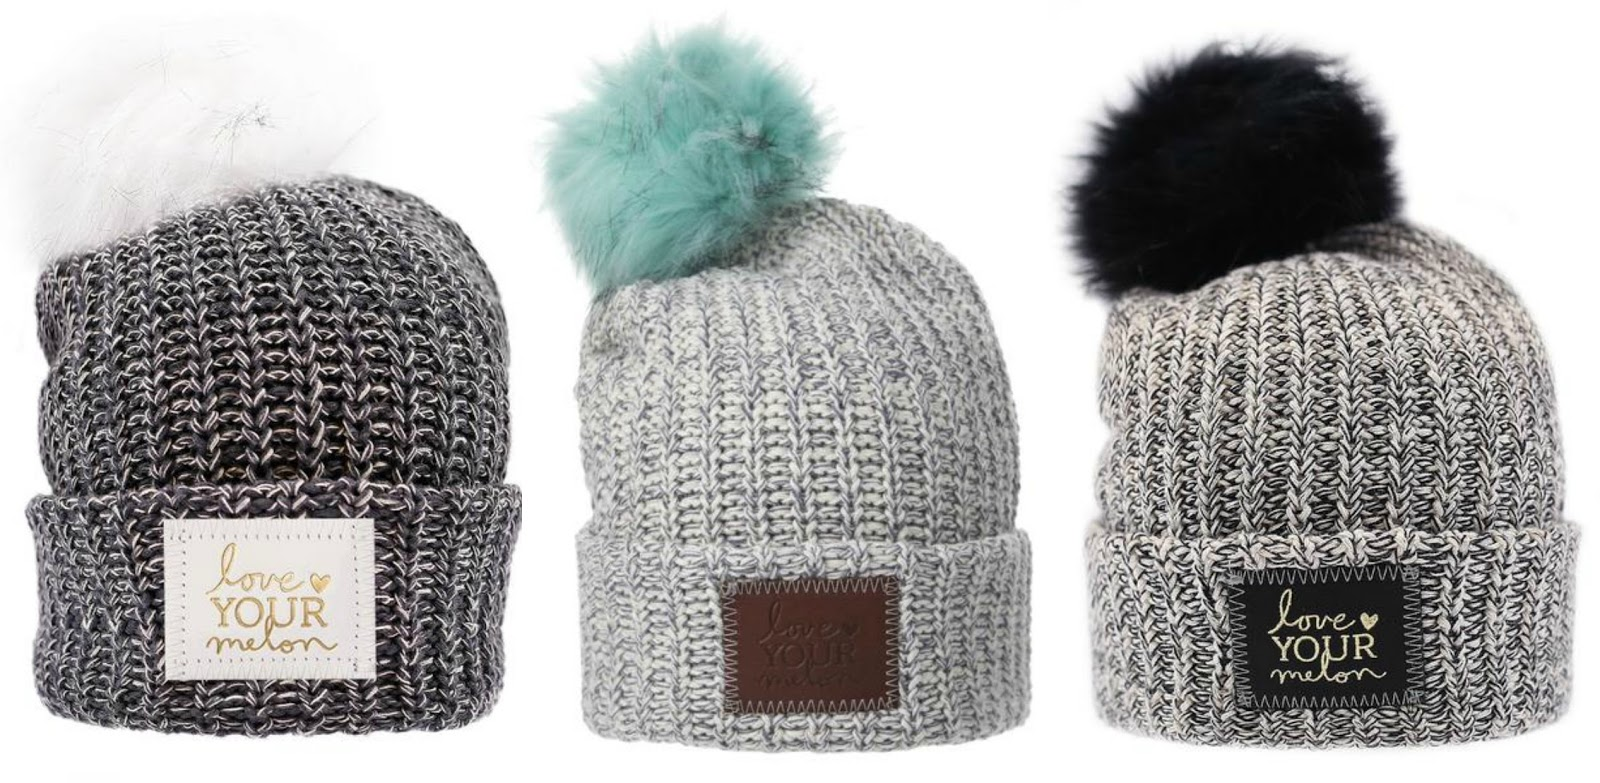 481520fed93 Left  CHARCOAL AND WHITE SPECKLED POM BEANIE   Center  GRAY SPECKLED POM  BEANIE (MINT POM)   Right  BLACK SPECKLED GOLD FOIL CUFFED POM BEANIE  (BLACK POM)